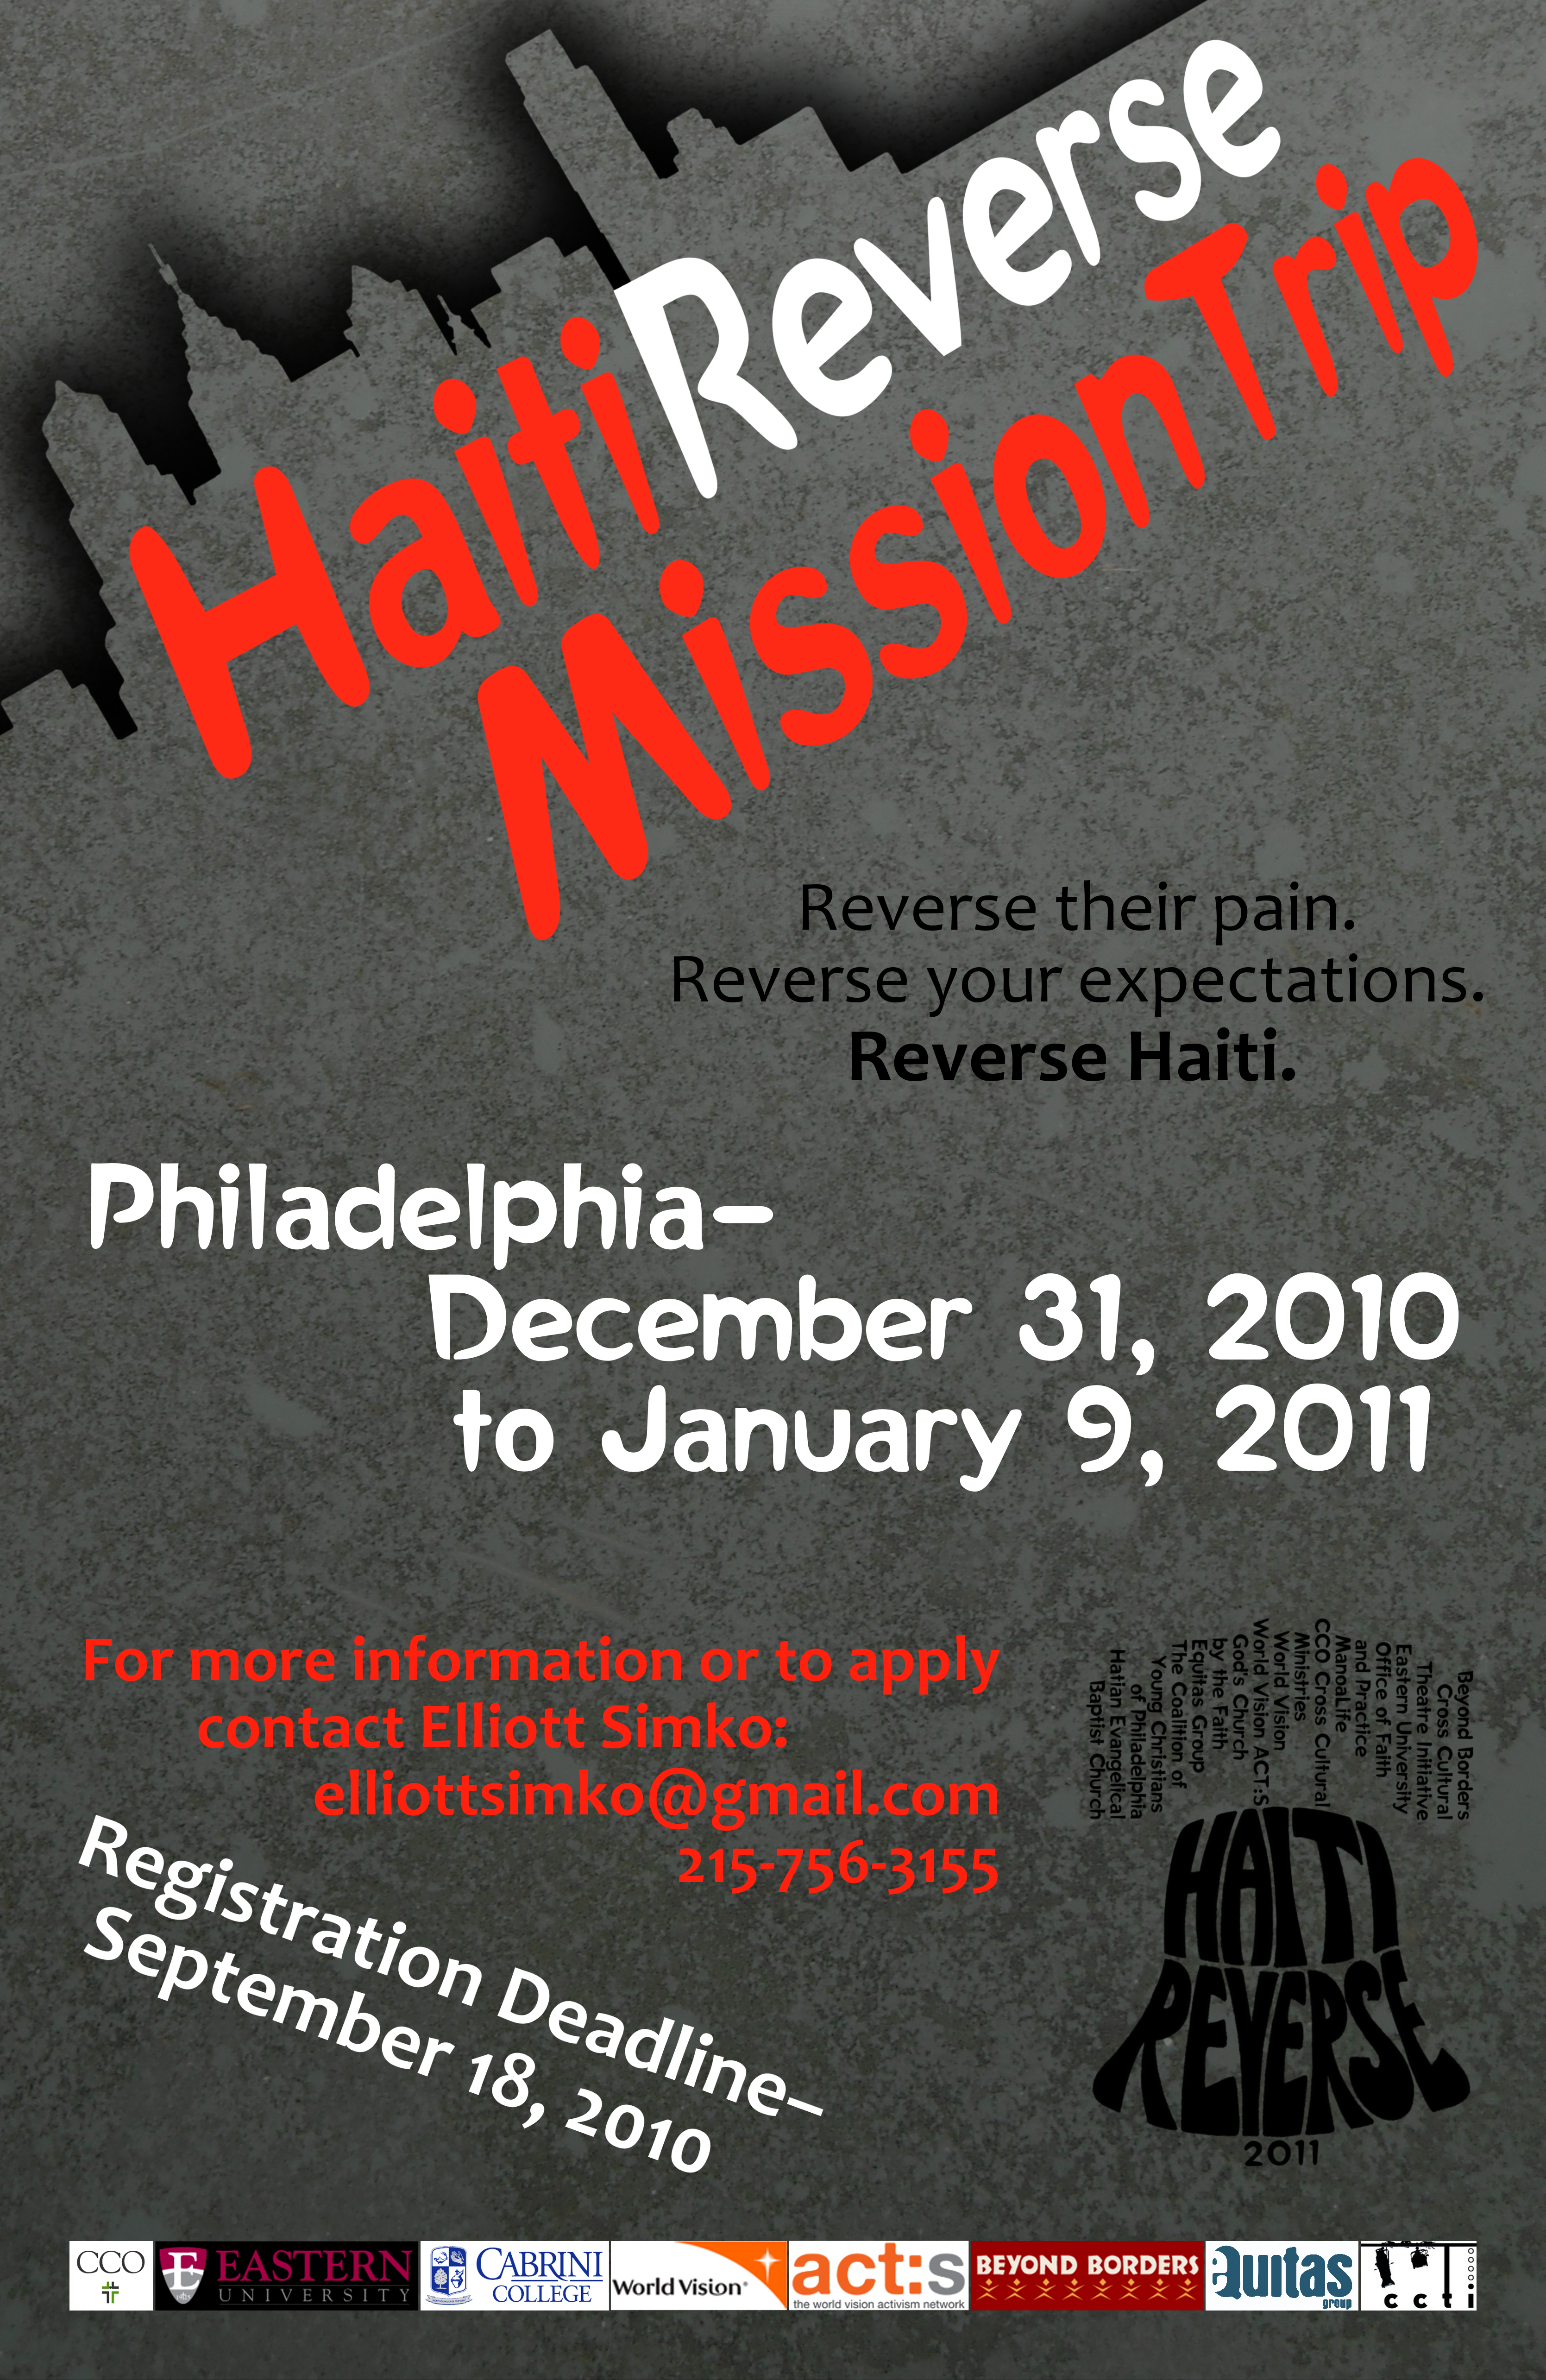 "<h4>Haiti Reverse Mission Trip Poster</h4> 				 				In the chaos that followed the 2010 earthquake in Haiti, some local churches and organizations decided on a different take on the traditional ""missions trip"" – instead of going to Haiti to try to help, they'd stay close to home and partner with Haitian-American churches on service projects in Philadelphia to learn about Haitian culture and build community... and send the money that would have gone to travel expenses directly to people and organizations already working effectively in Haiti. (11x17in)"